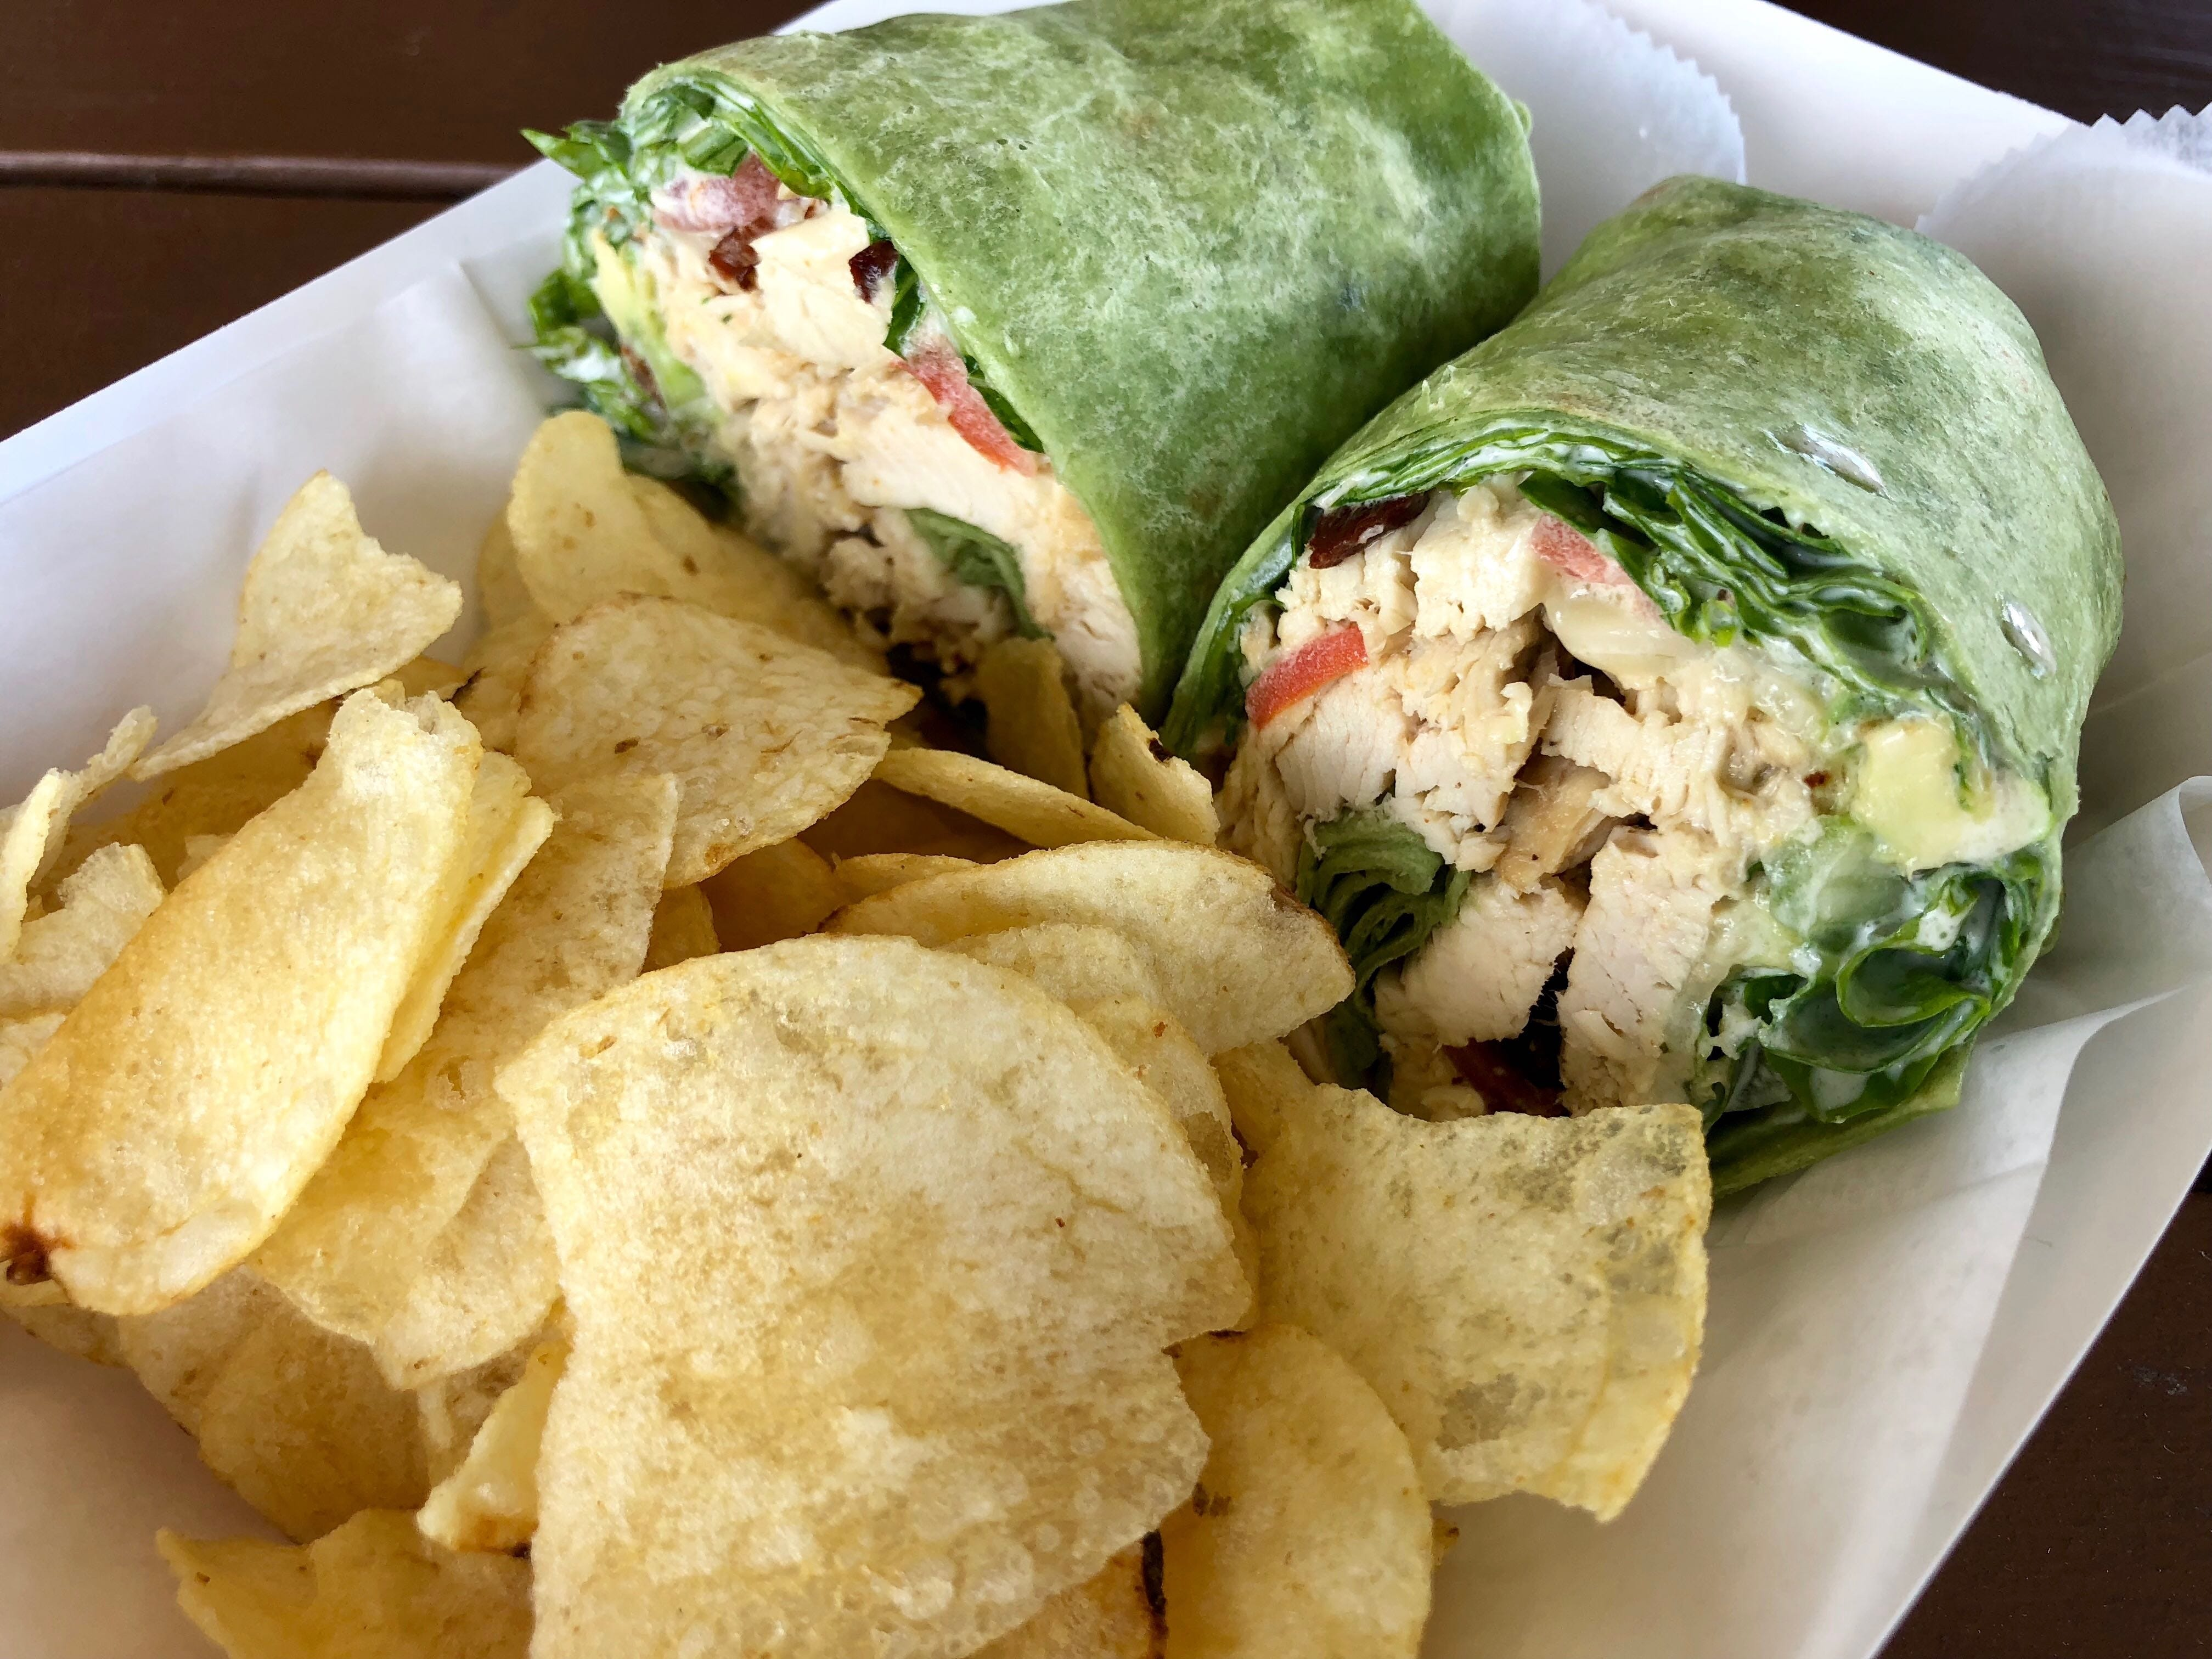 A farm wrap made with apple chicken, avocado, greens and a cucumber ranch dressing at Fresh Harvest Cafe.